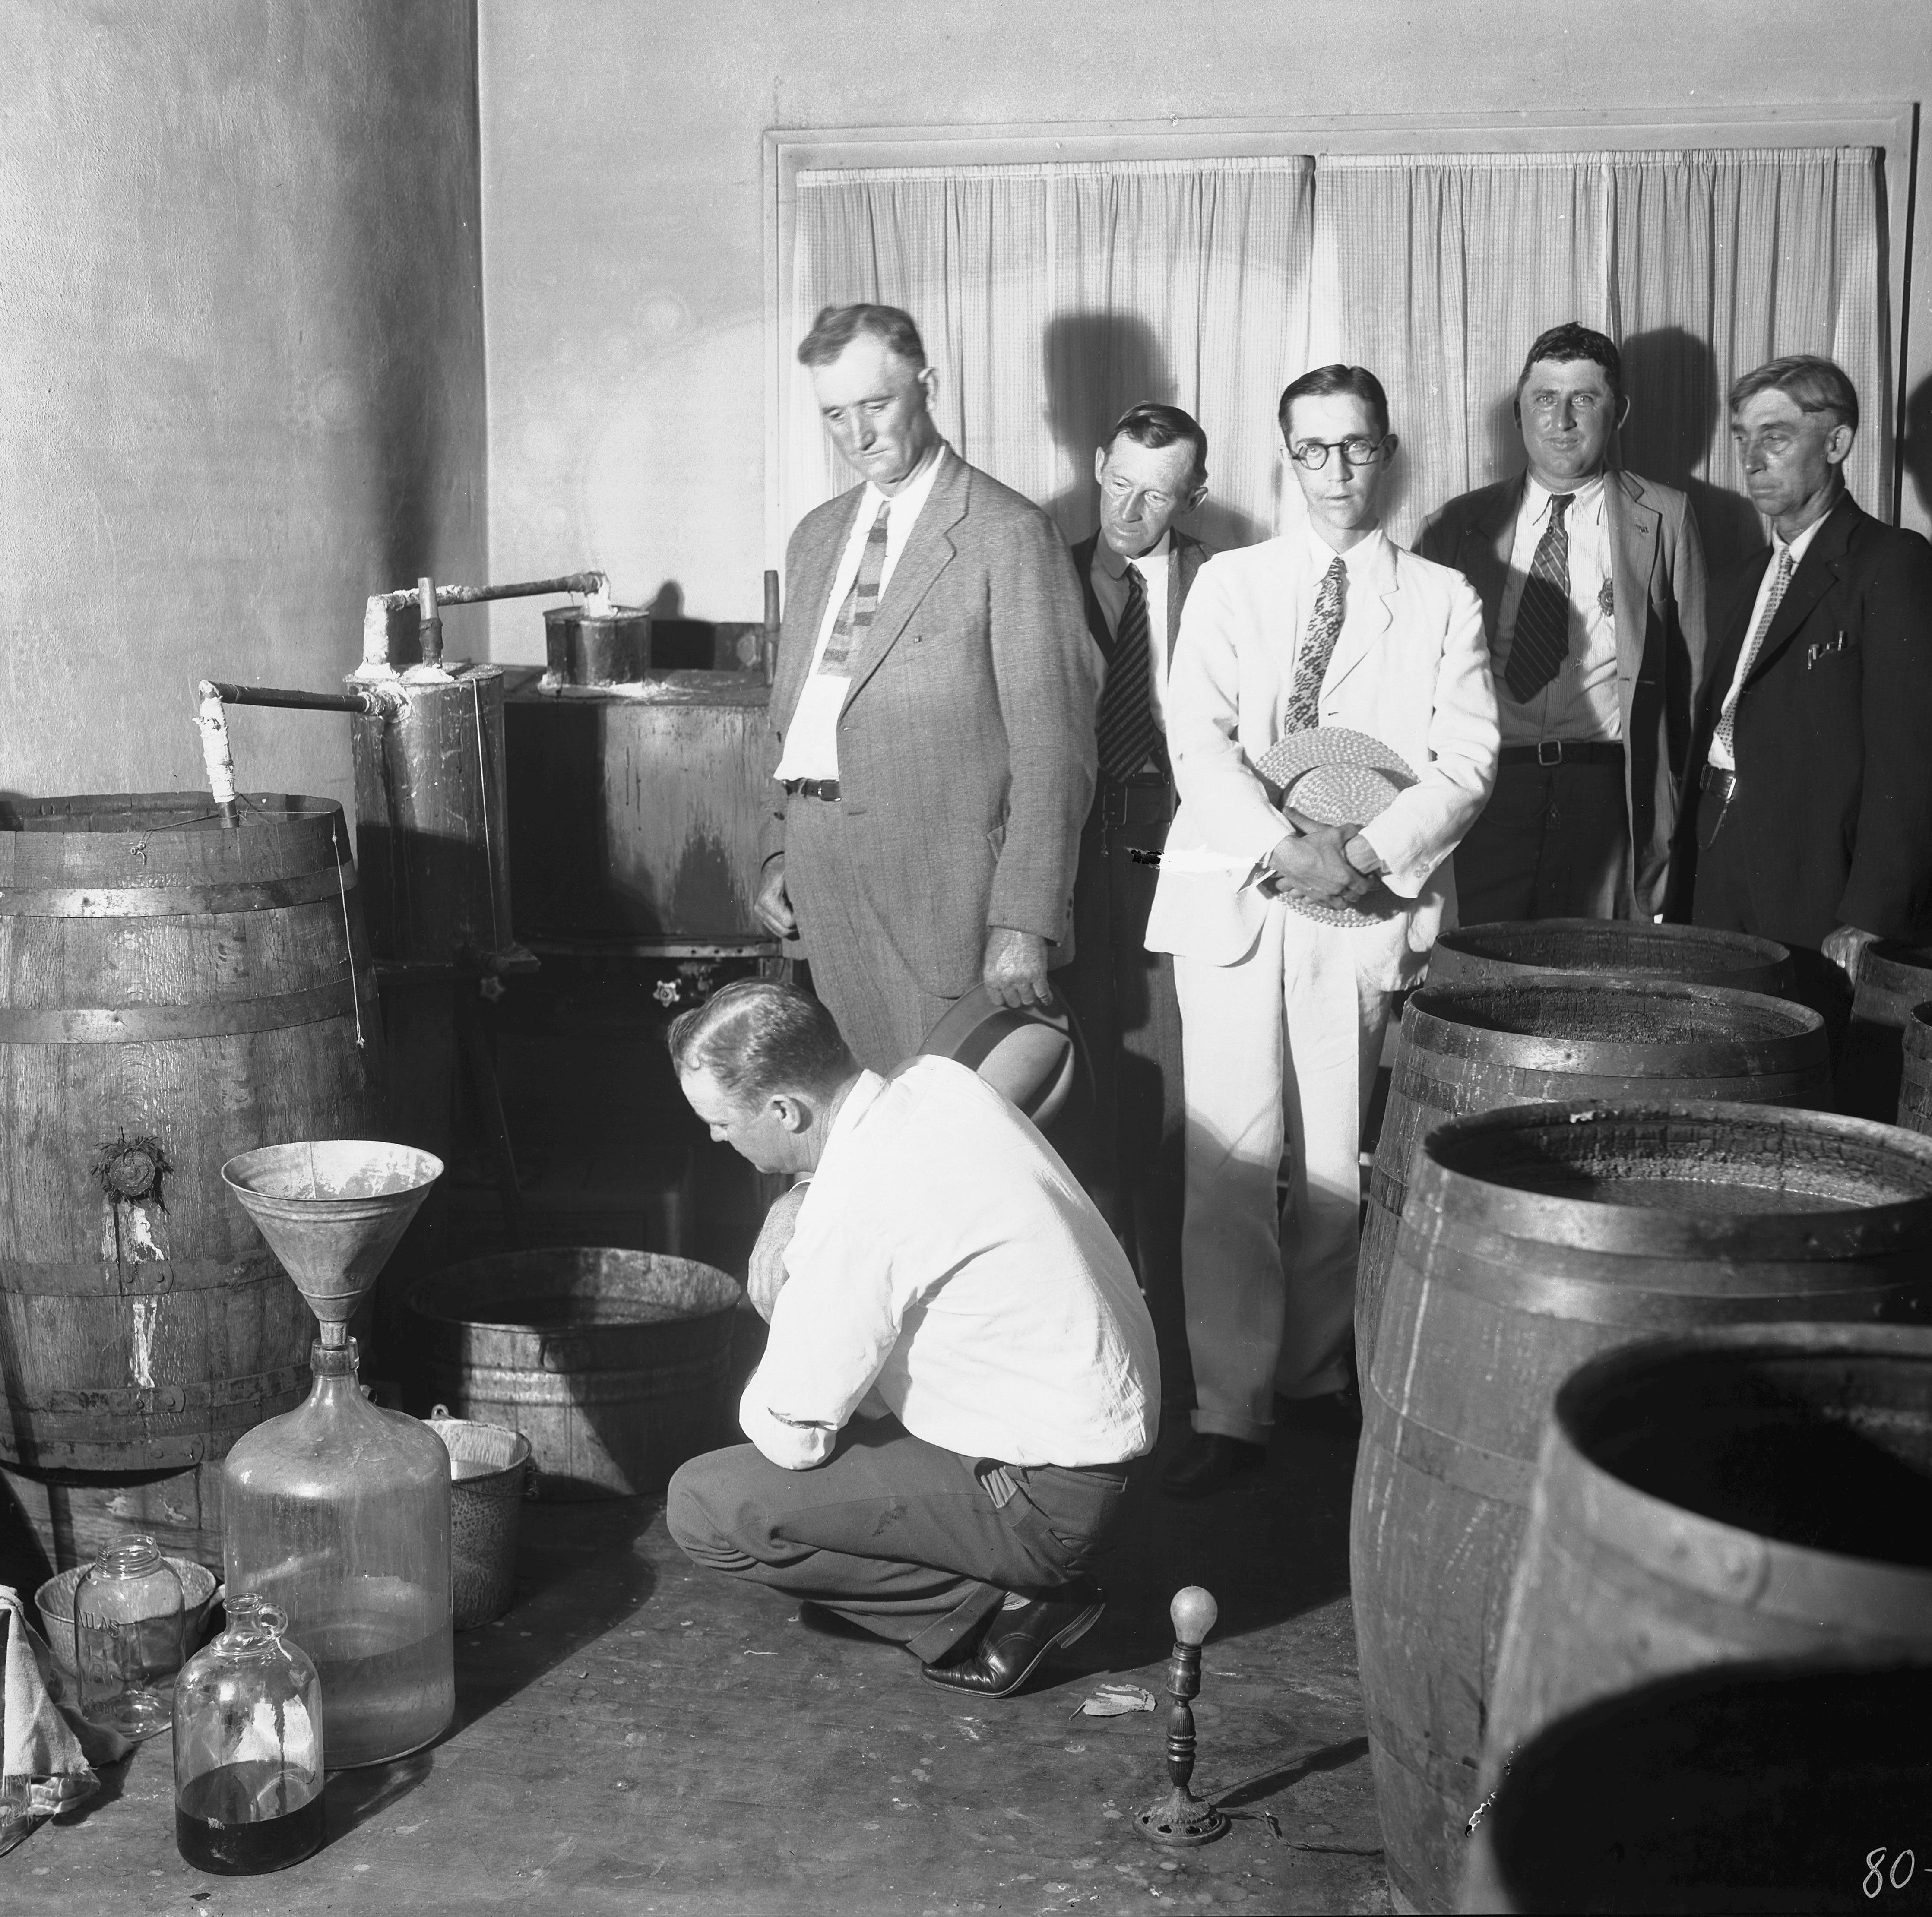 Portrait of the Past: North Asheville whiskey still, 1950s